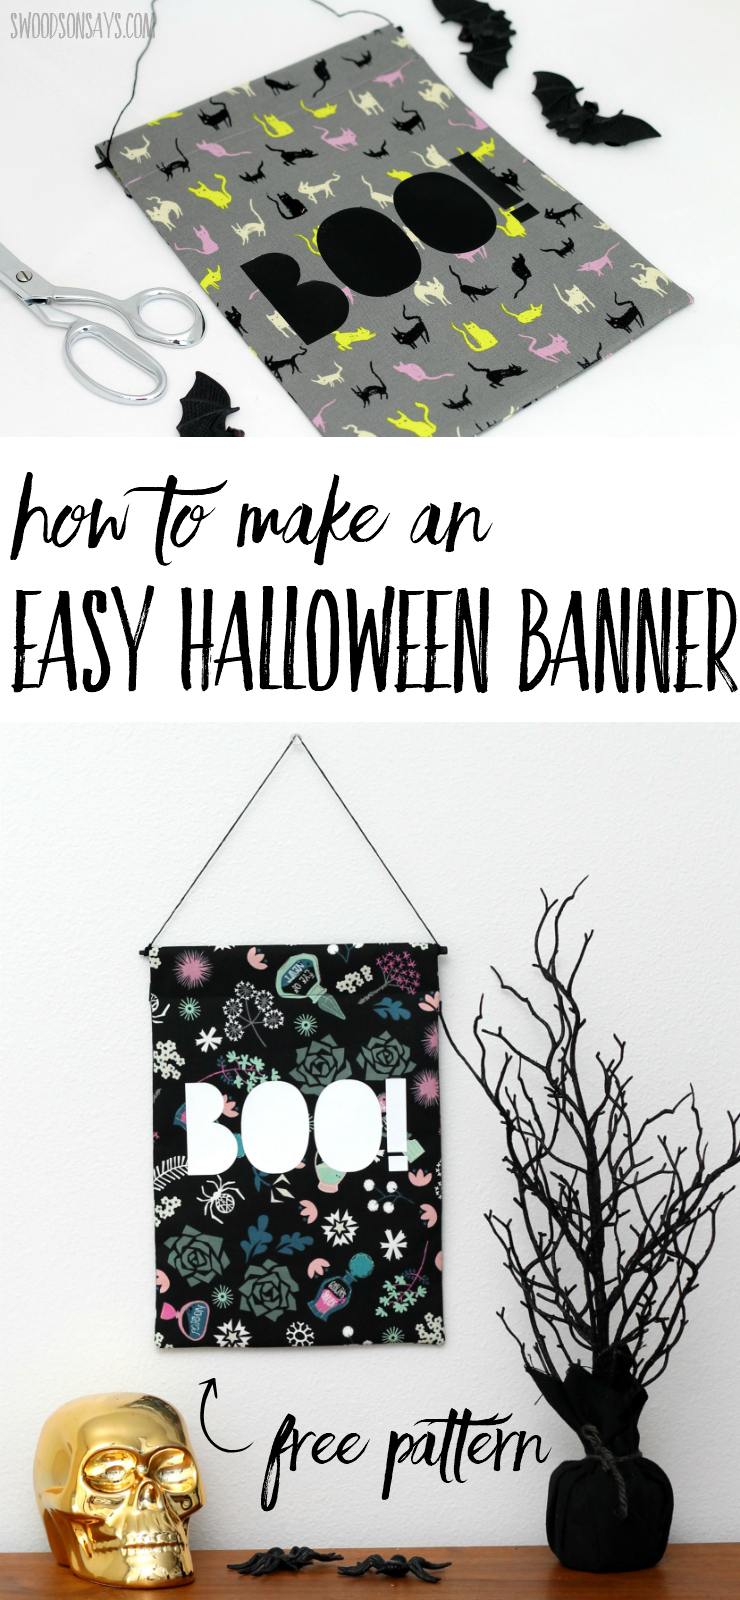 Use this free sewing tutorial to make an easy Halloween banner! Includes a free Halloween cut file and picture tutorial for fun Halloween sewing. #diyhalloween